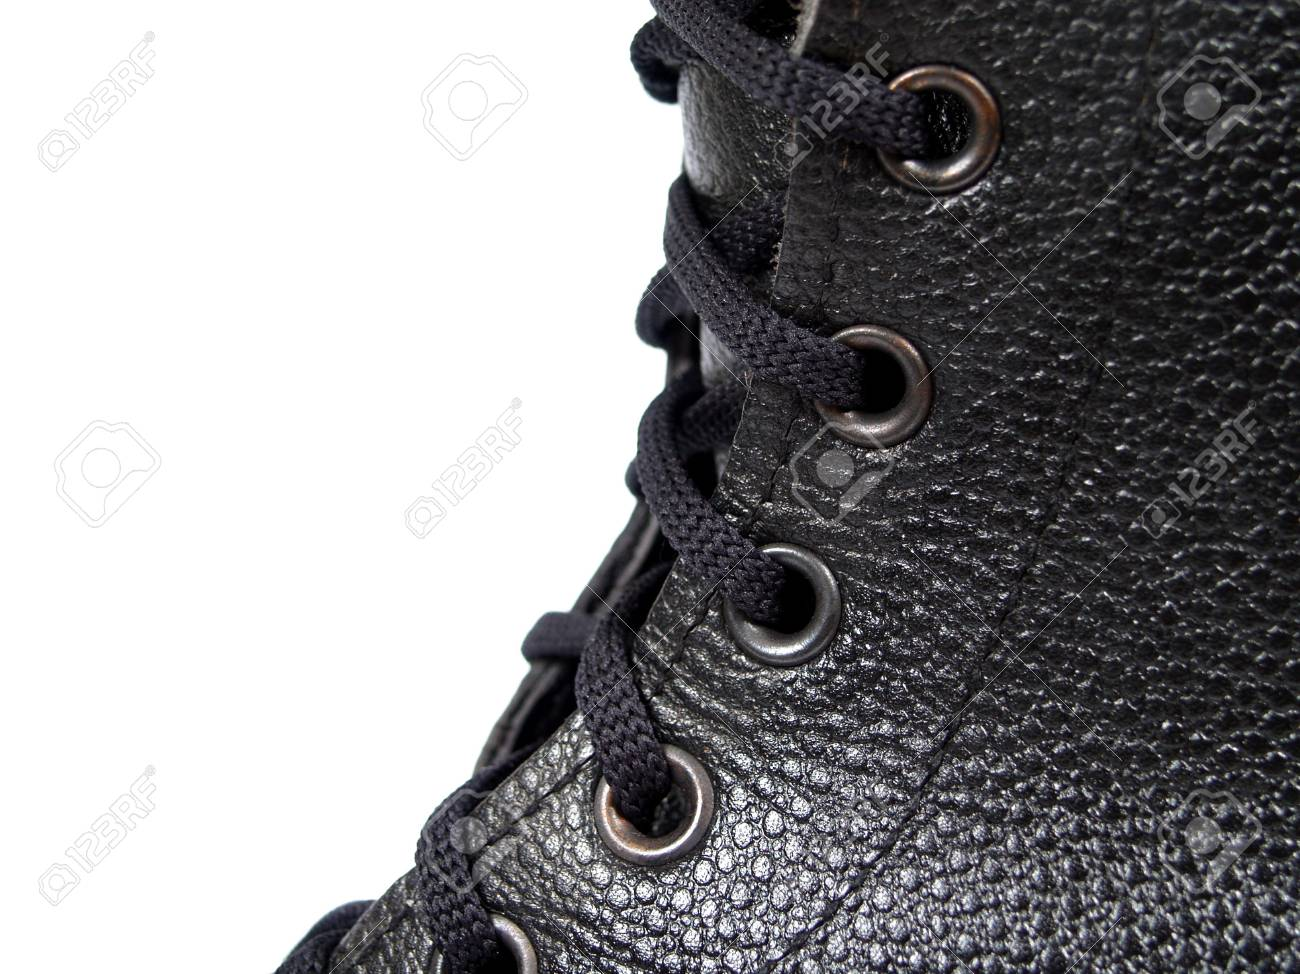 clasp black army footwear on white background Stock Photo - 8946936